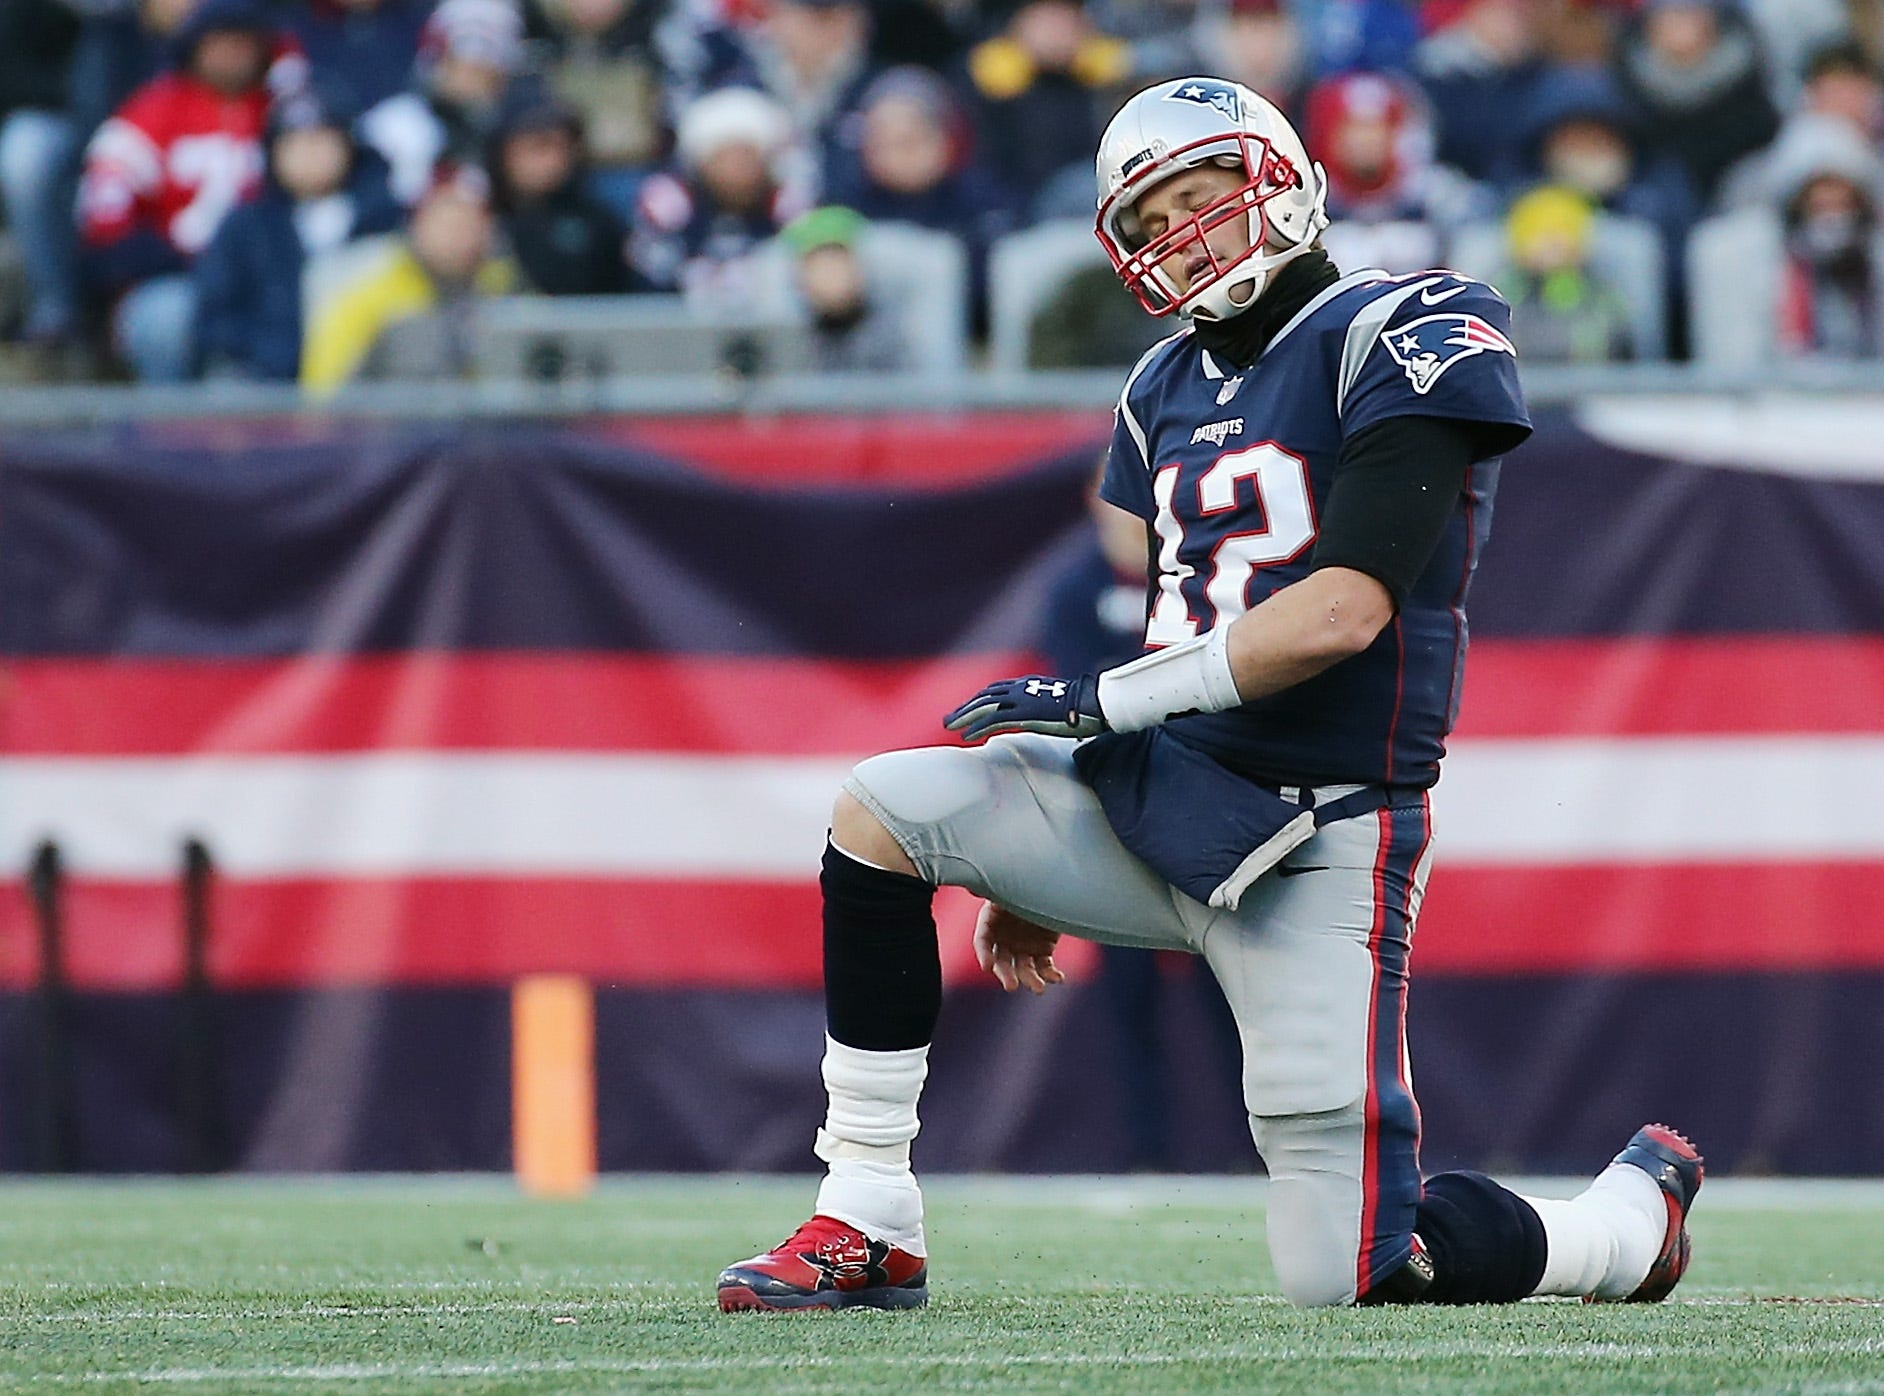 FOXBOROUGH, MA - DECEMBER 23:  Tom Brady #12 of the New England Patriots reacts during the second half against the Buffalo Bills at Gillette Stadium on December 23, 2018 in Foxborough, Massachusetts.  (Photo by Jim Rogash/Getty Images)